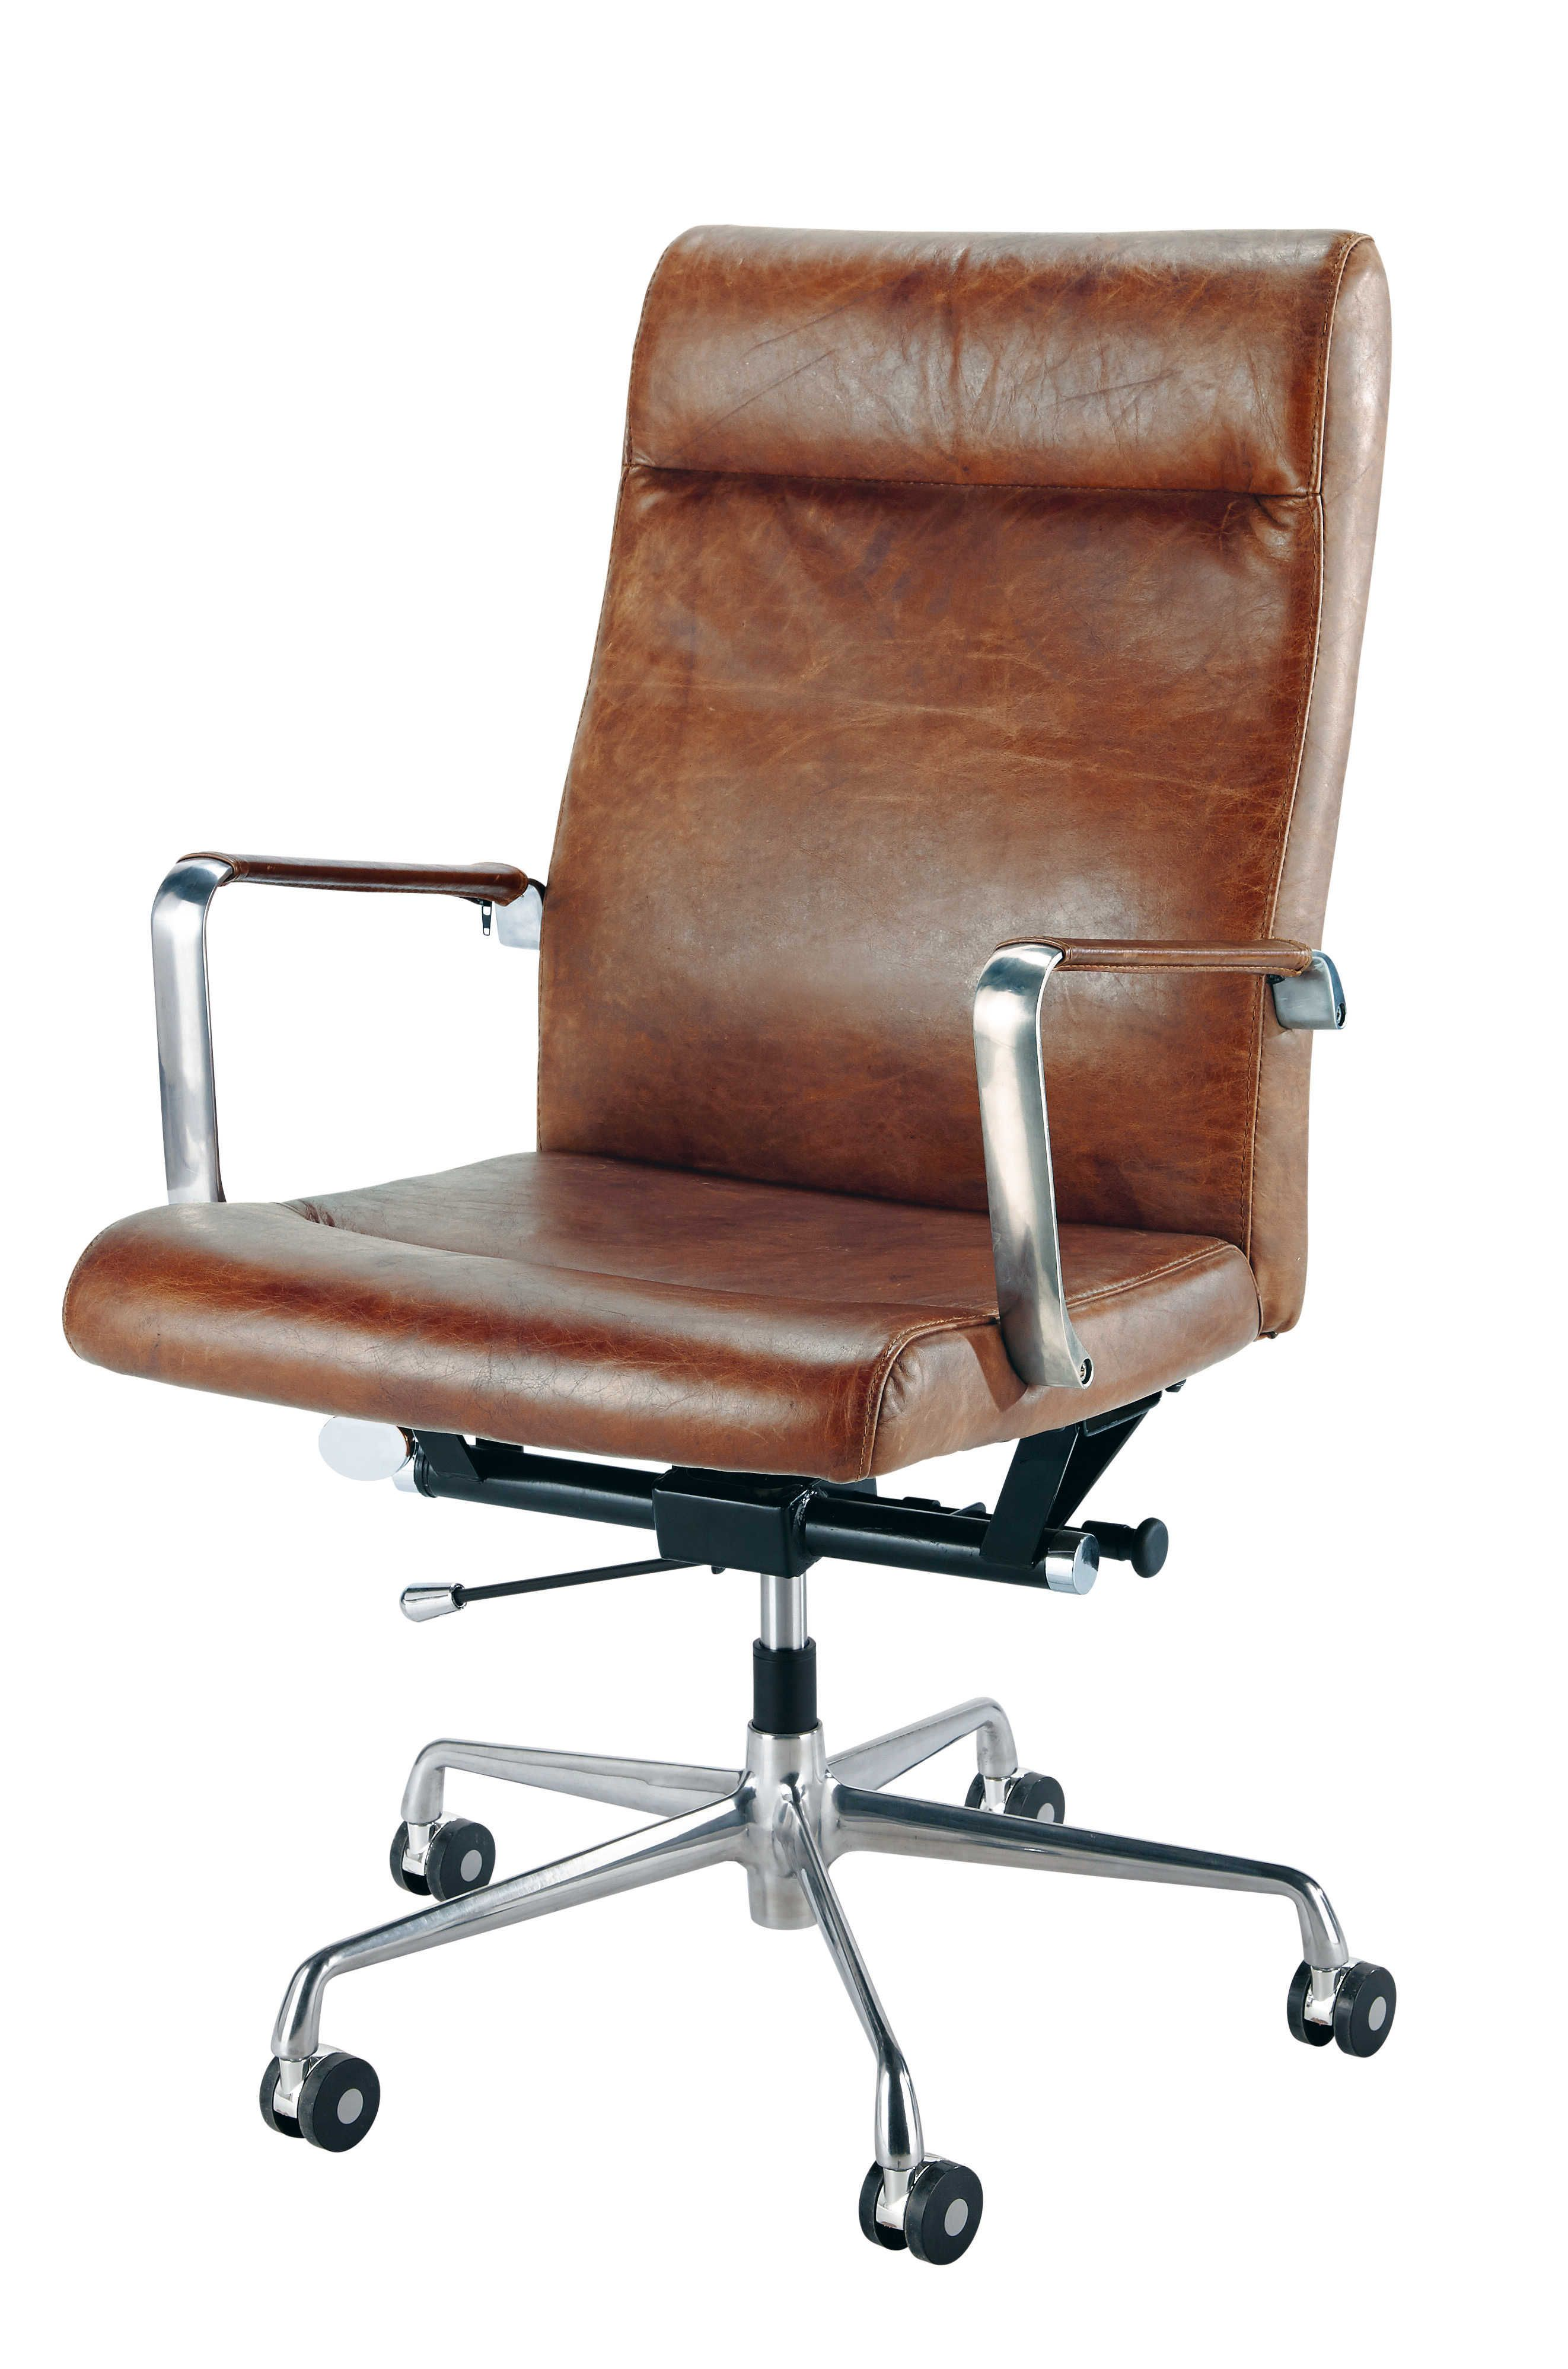 chair pdp joss furniture comfortable dana main desk reviews office